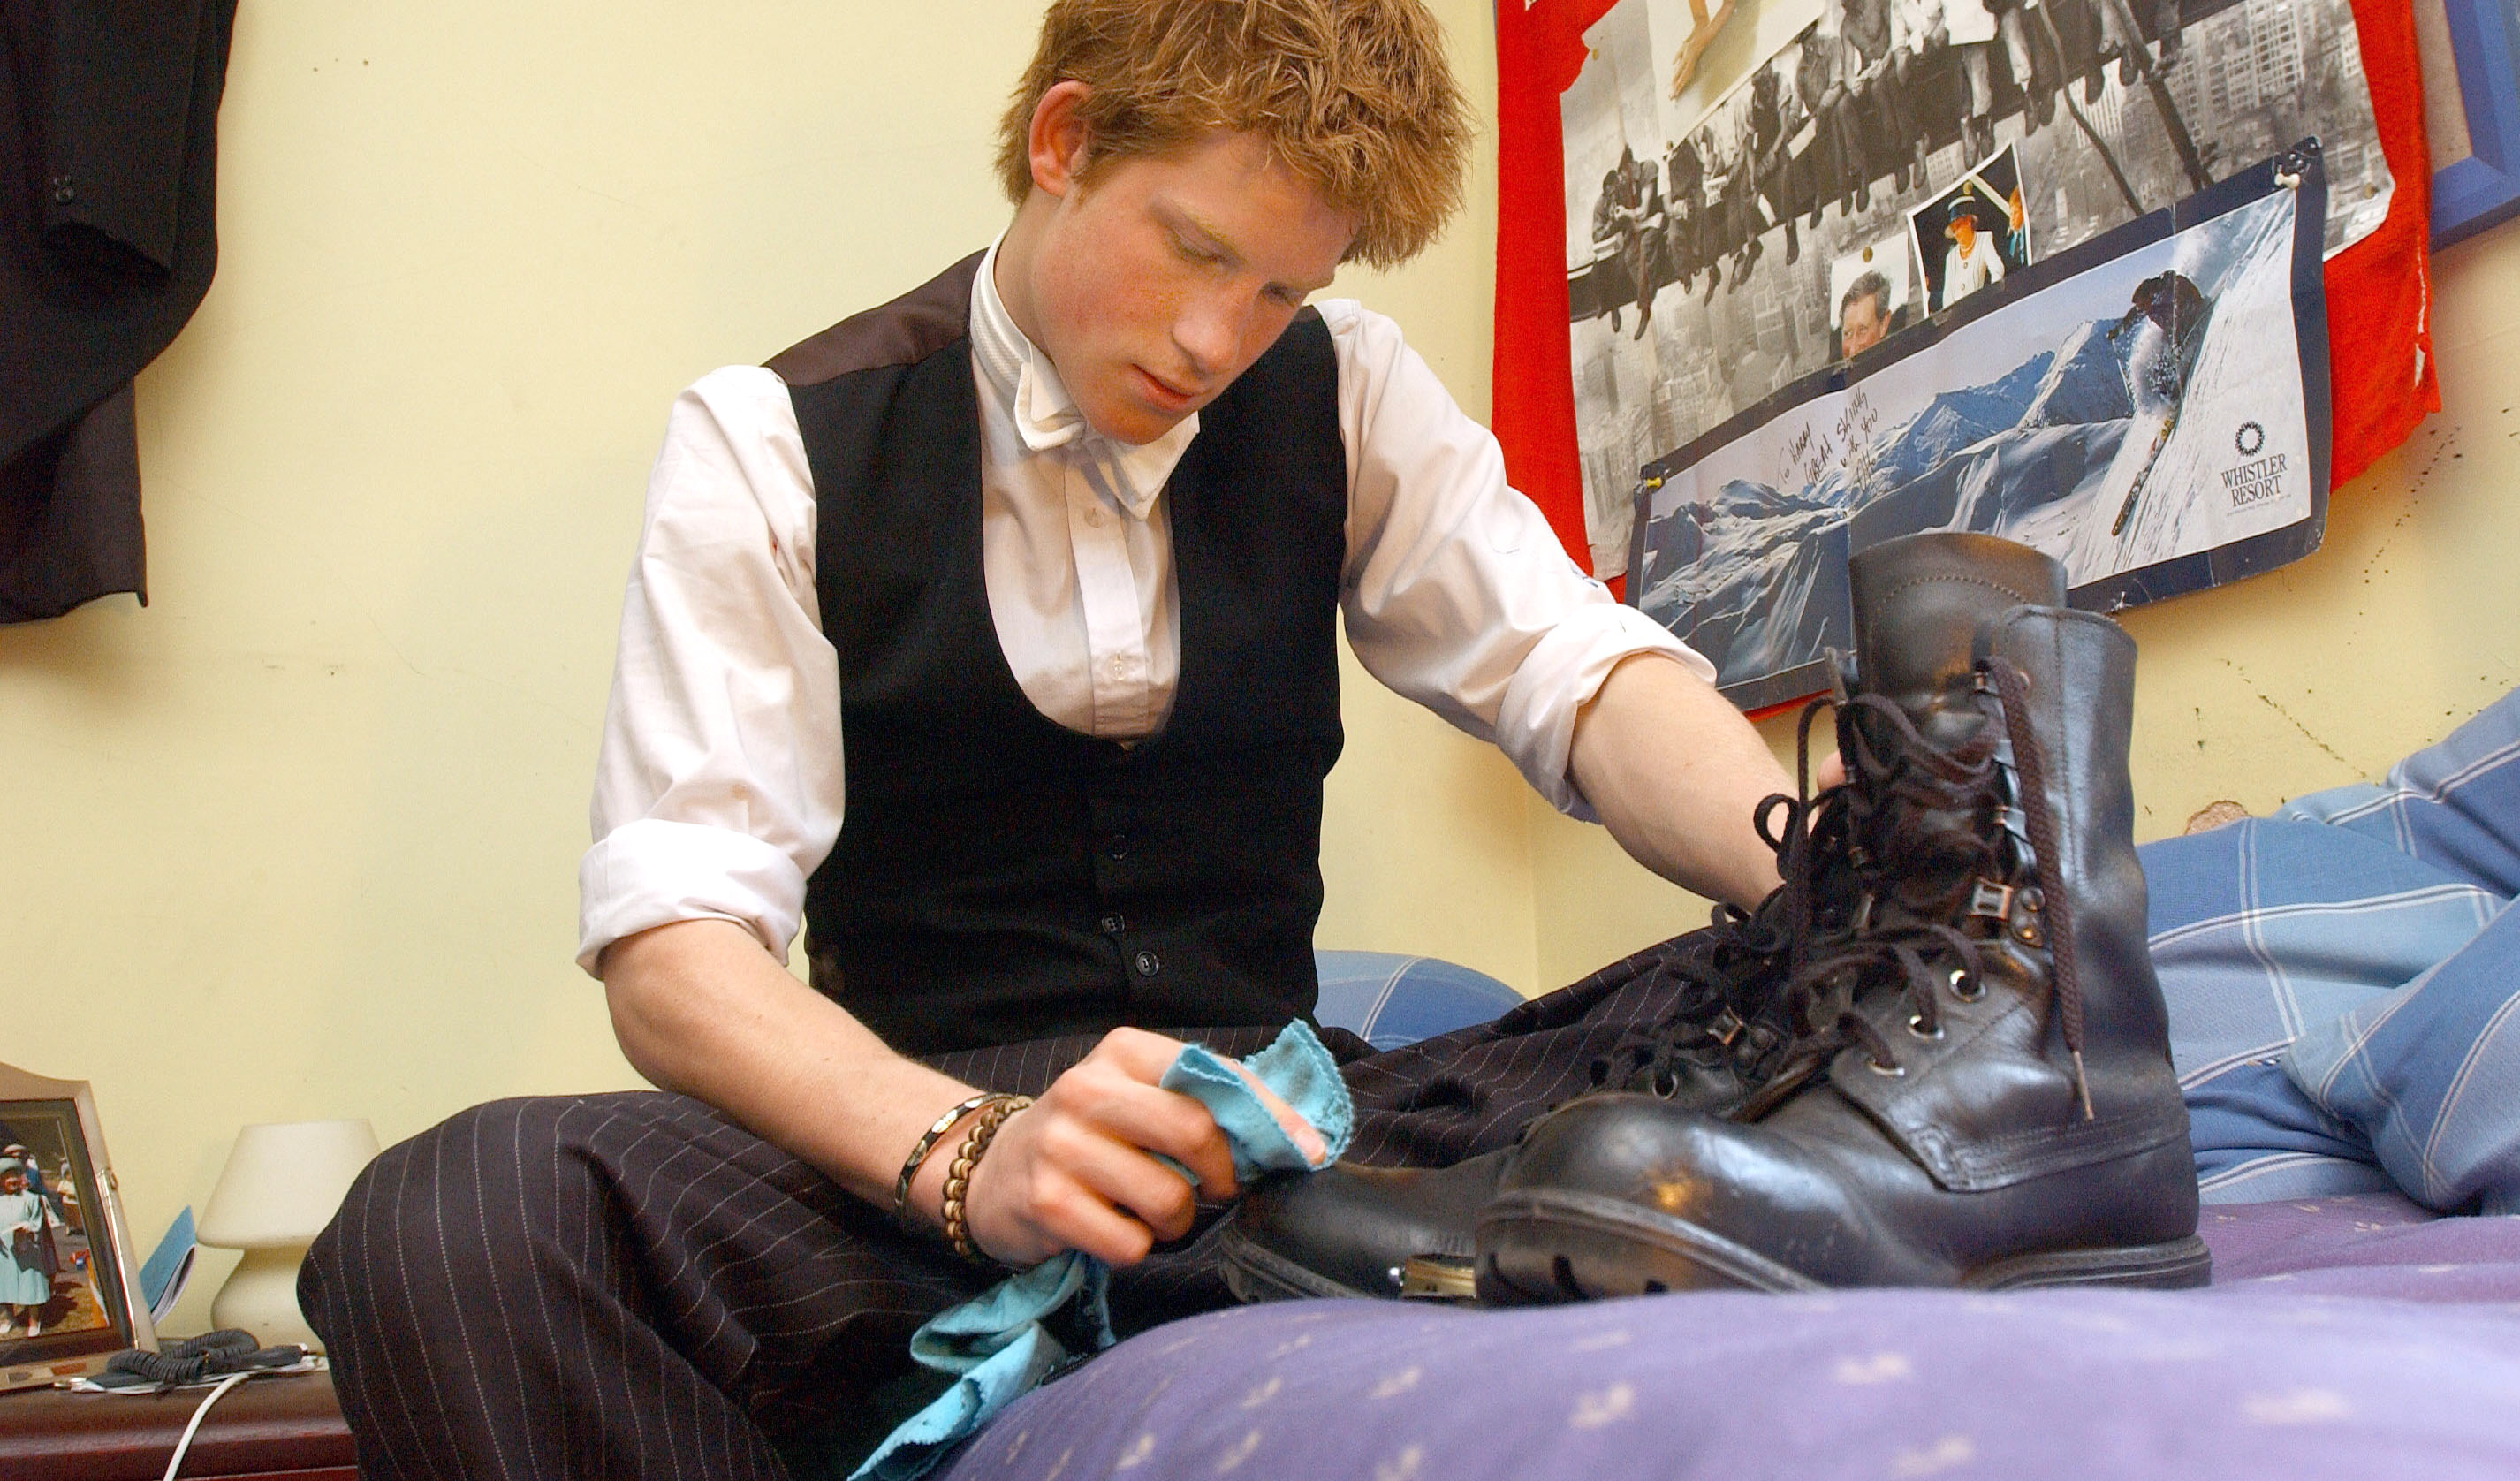 Prince Harry on his bed at Eton